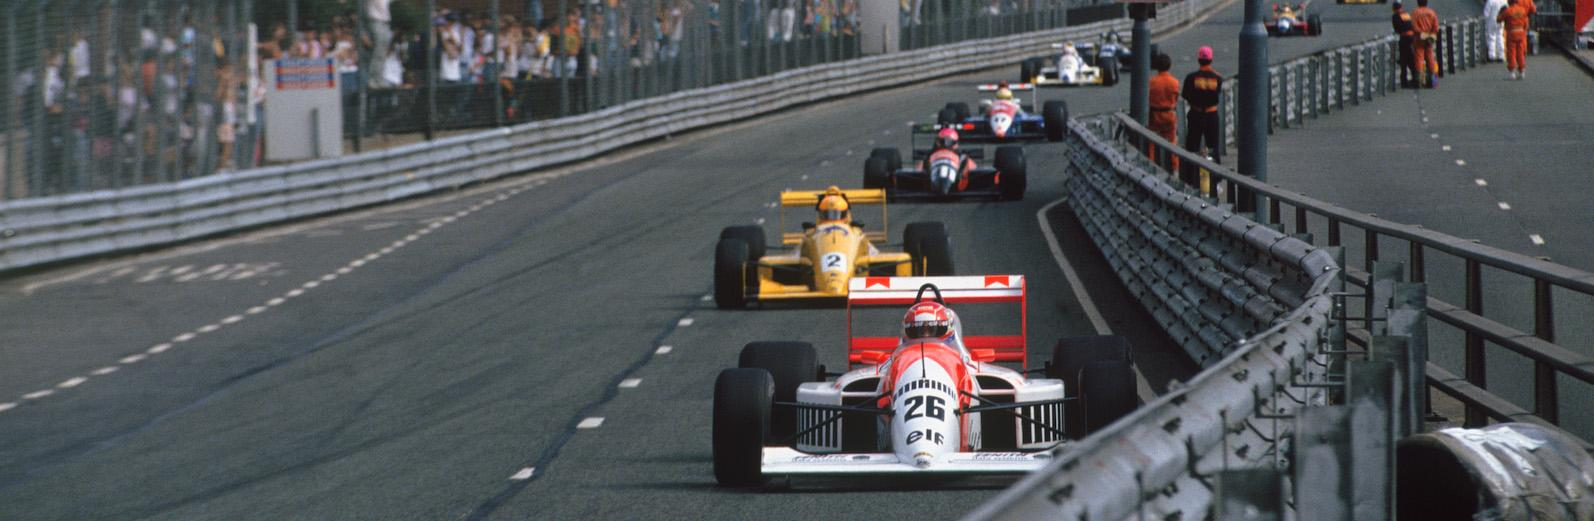 First UK city-centre motorsport in 30 years confirmed